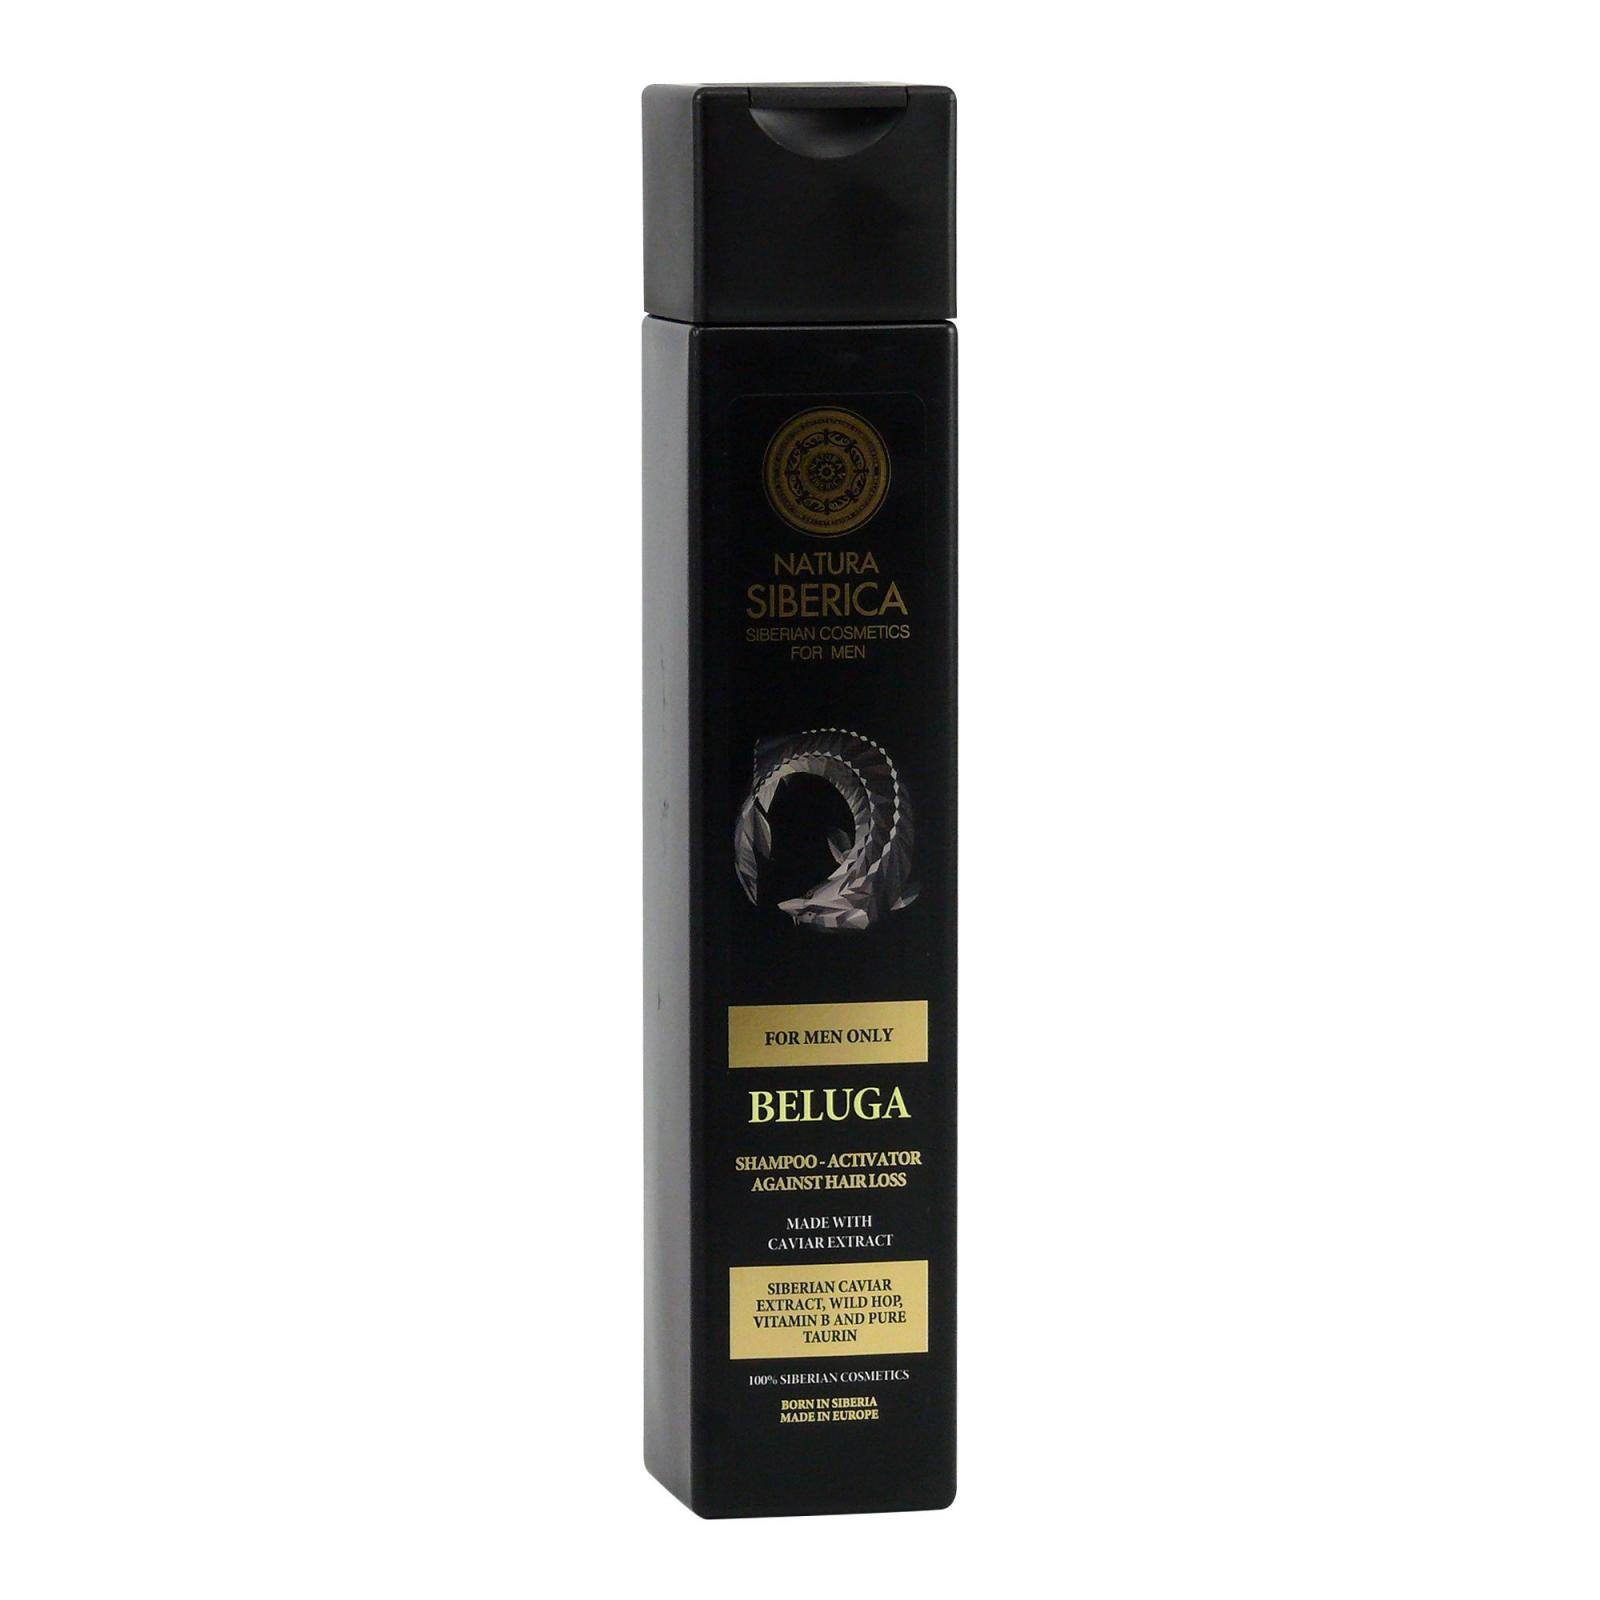 Natura Siberica Šampon proti padání vlasů Beluga, For men only 250 ml